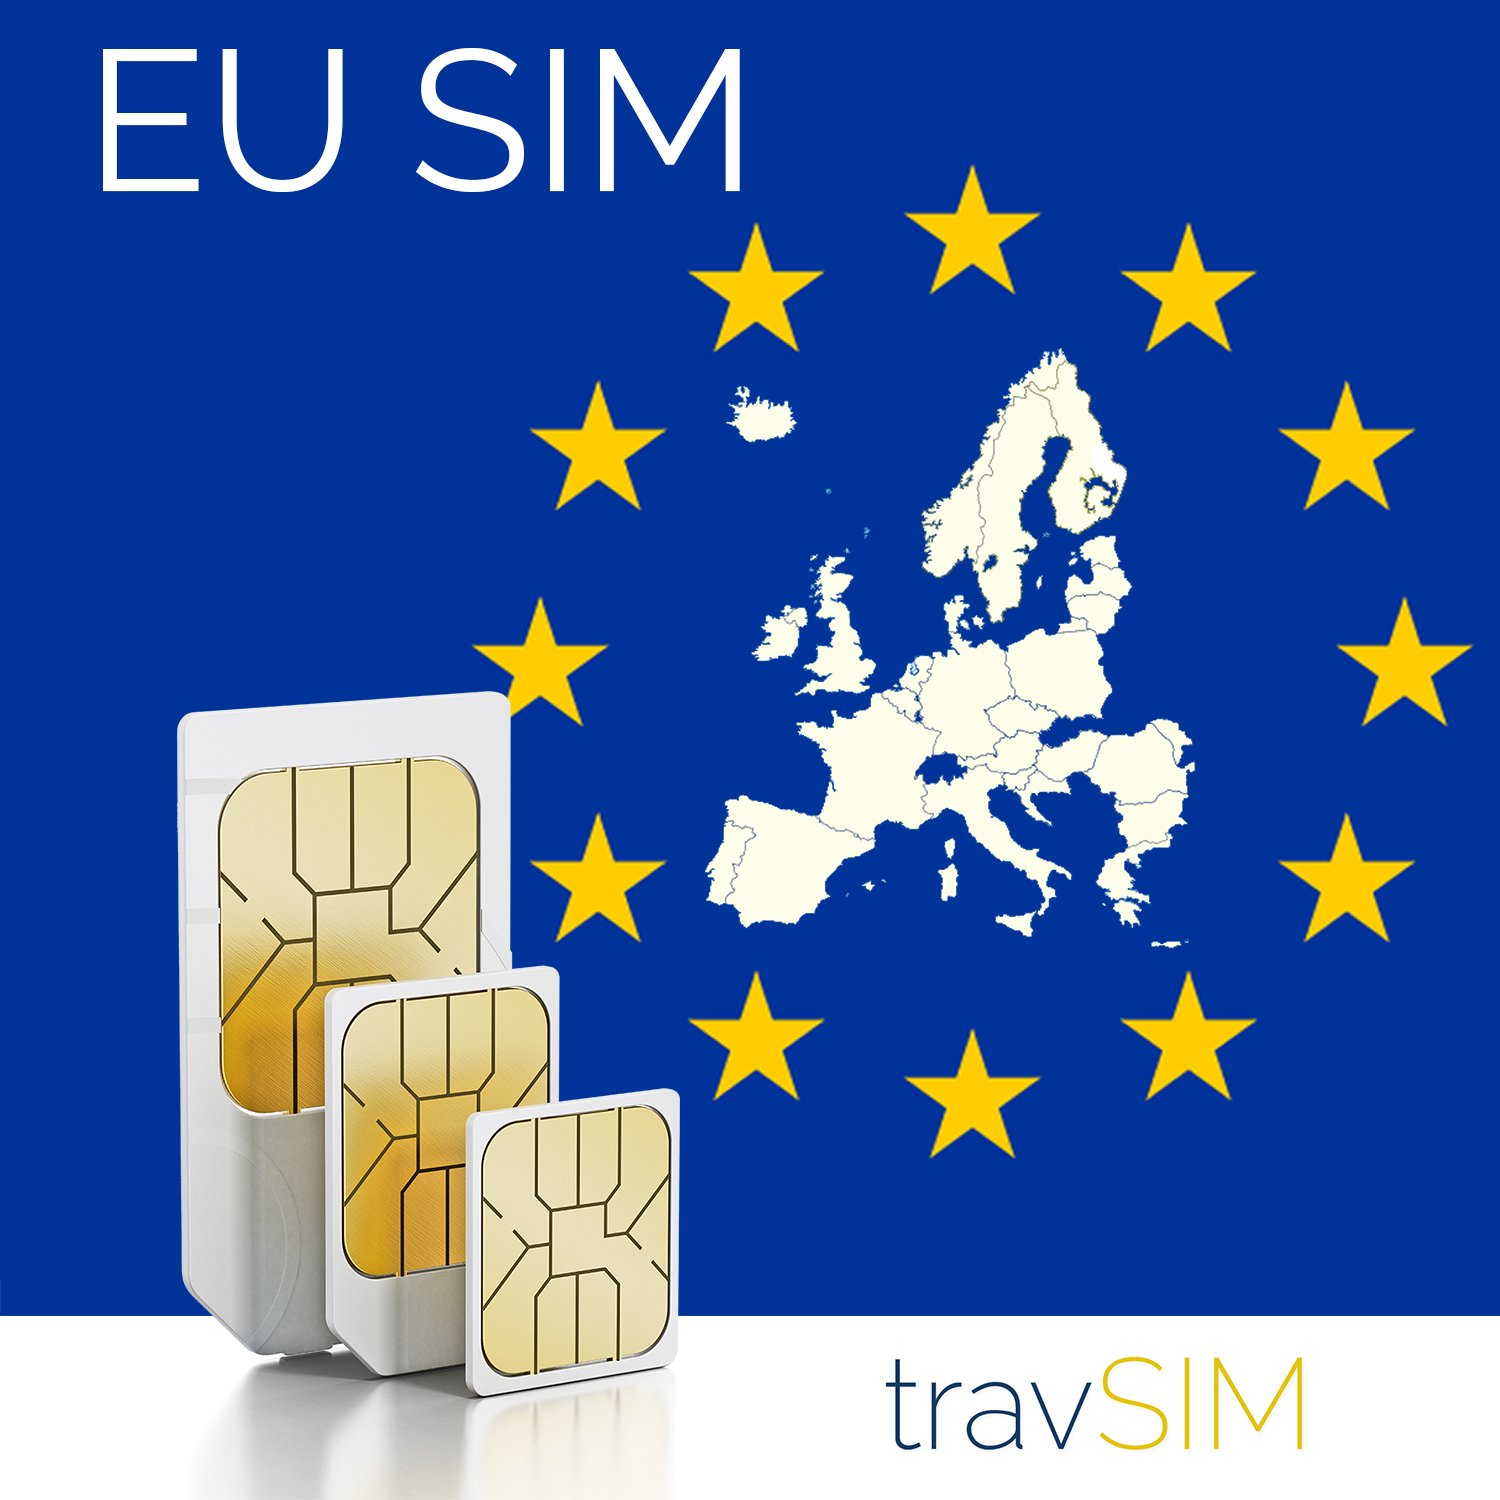 Northern Europe (Incl Denmark, Finland, Iceland, Norway, Ireland, Sweden, UK) 9GB Data SIM 42 Countries Instant Connection 30 Day Plan (3000 min free within 48 Countries & Territories incl EU) by travsim